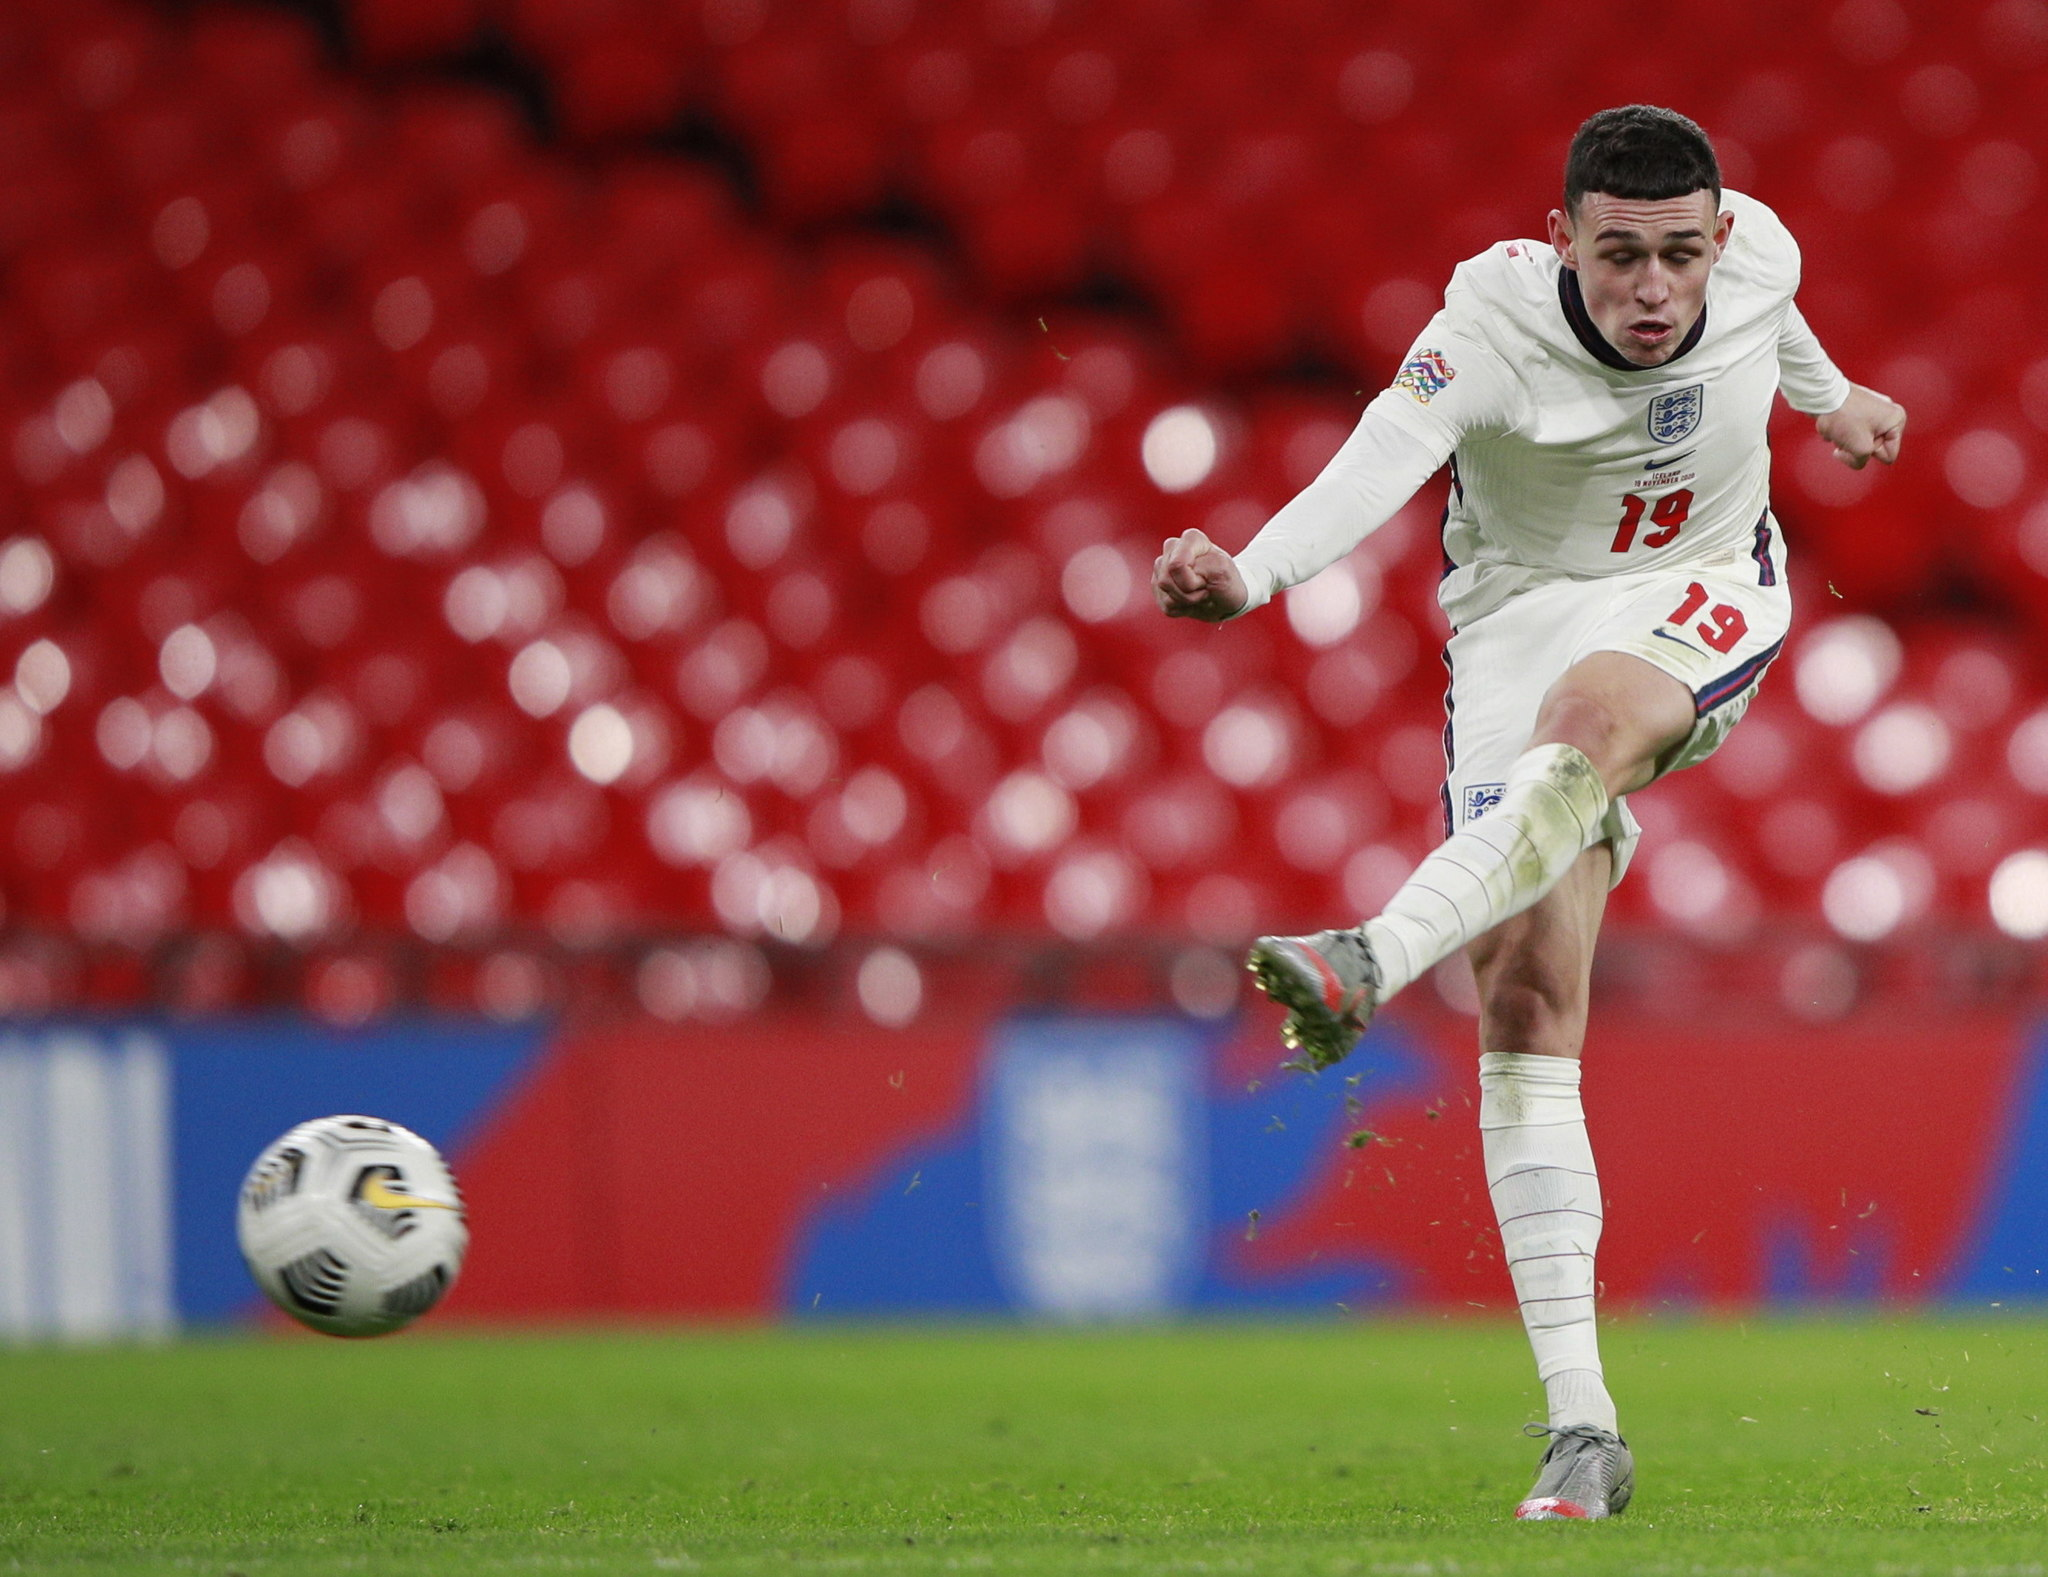 London (United Kingdom), 18/11/2020.- Phil lt;HIT gt;Foden lt;/HIT gt; of England scores the 3-0 lead during the UEFA Nations League soccer match between England and Iceland at Wembley in London, Britain, 18 November 2020. (Islandia, Reino Unido, Londres) EFE/EPA/Ian Walton / POOL